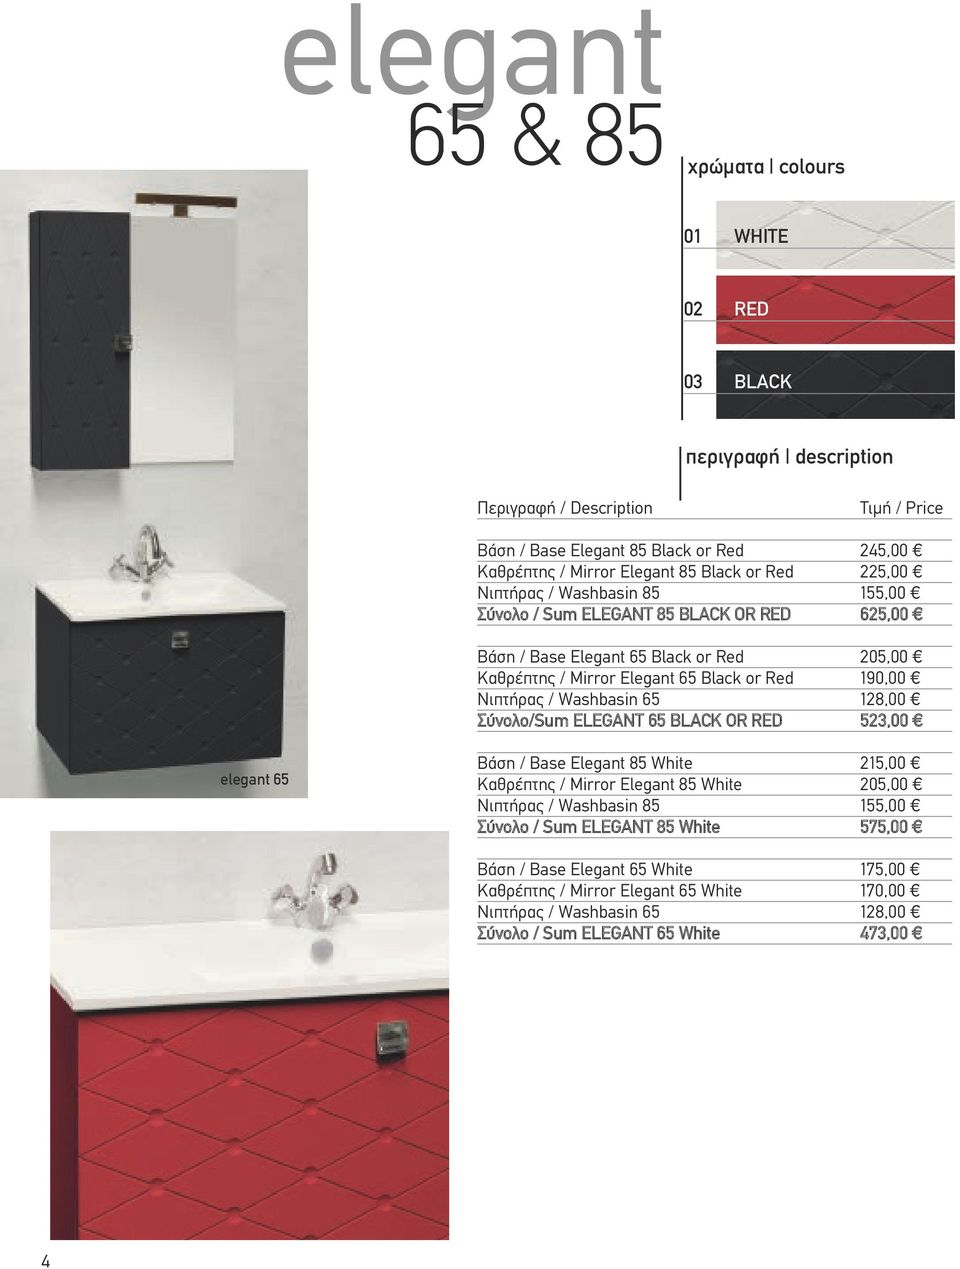 Νιπτήρας / Washbasin 65 128,00 Σύνολο/Sum ELEGANT 65 BLACK OR RED 523,00 elegant 65 Βάση / Base Elegant 85 White 215,00 Καθρέπτης / Mirror Elegant 85 White 205,00 Νιπτήρας / Washbasin 85